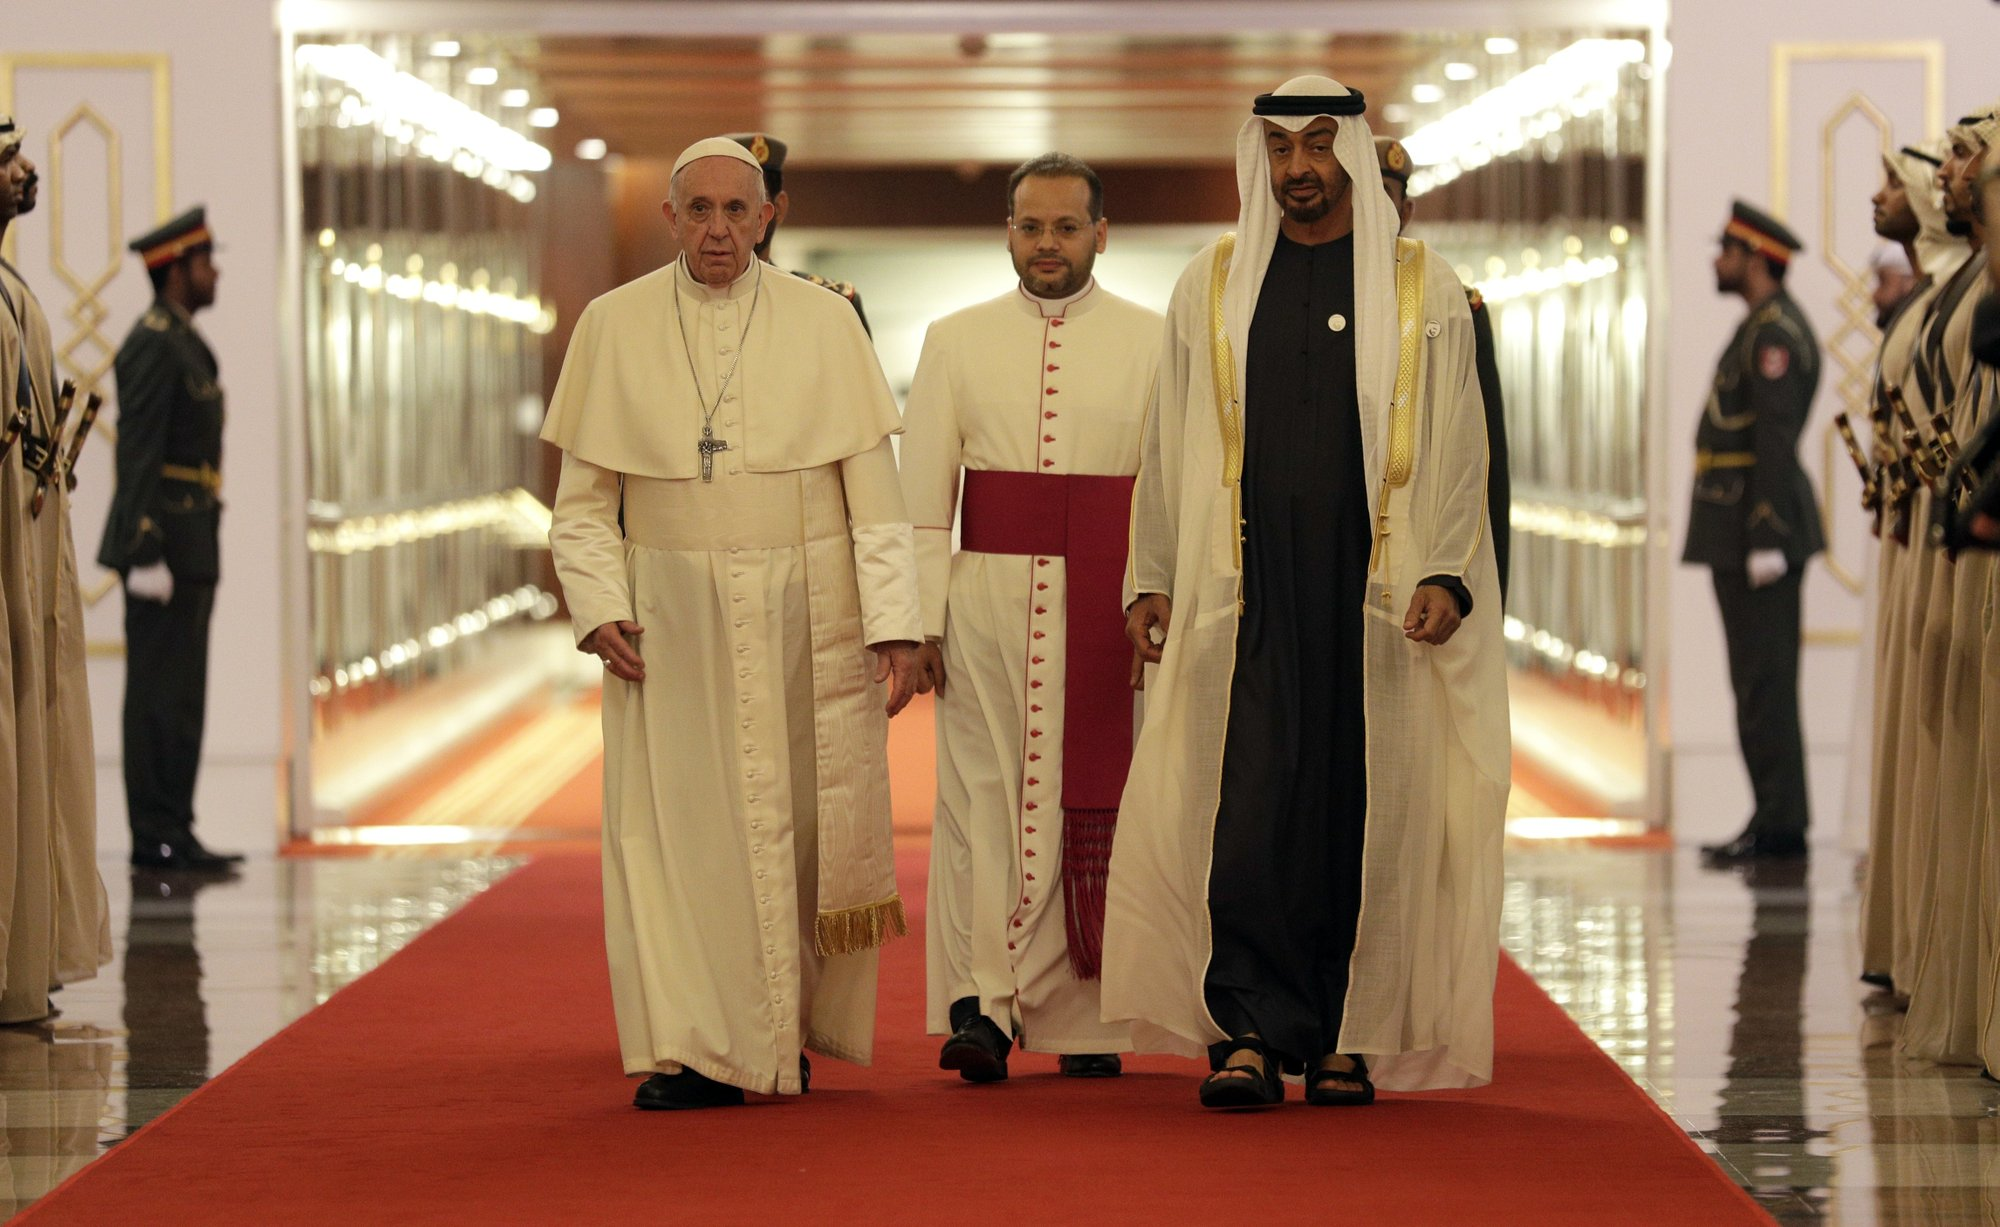 Pope in UAE for historic trip after call for Yemen relief